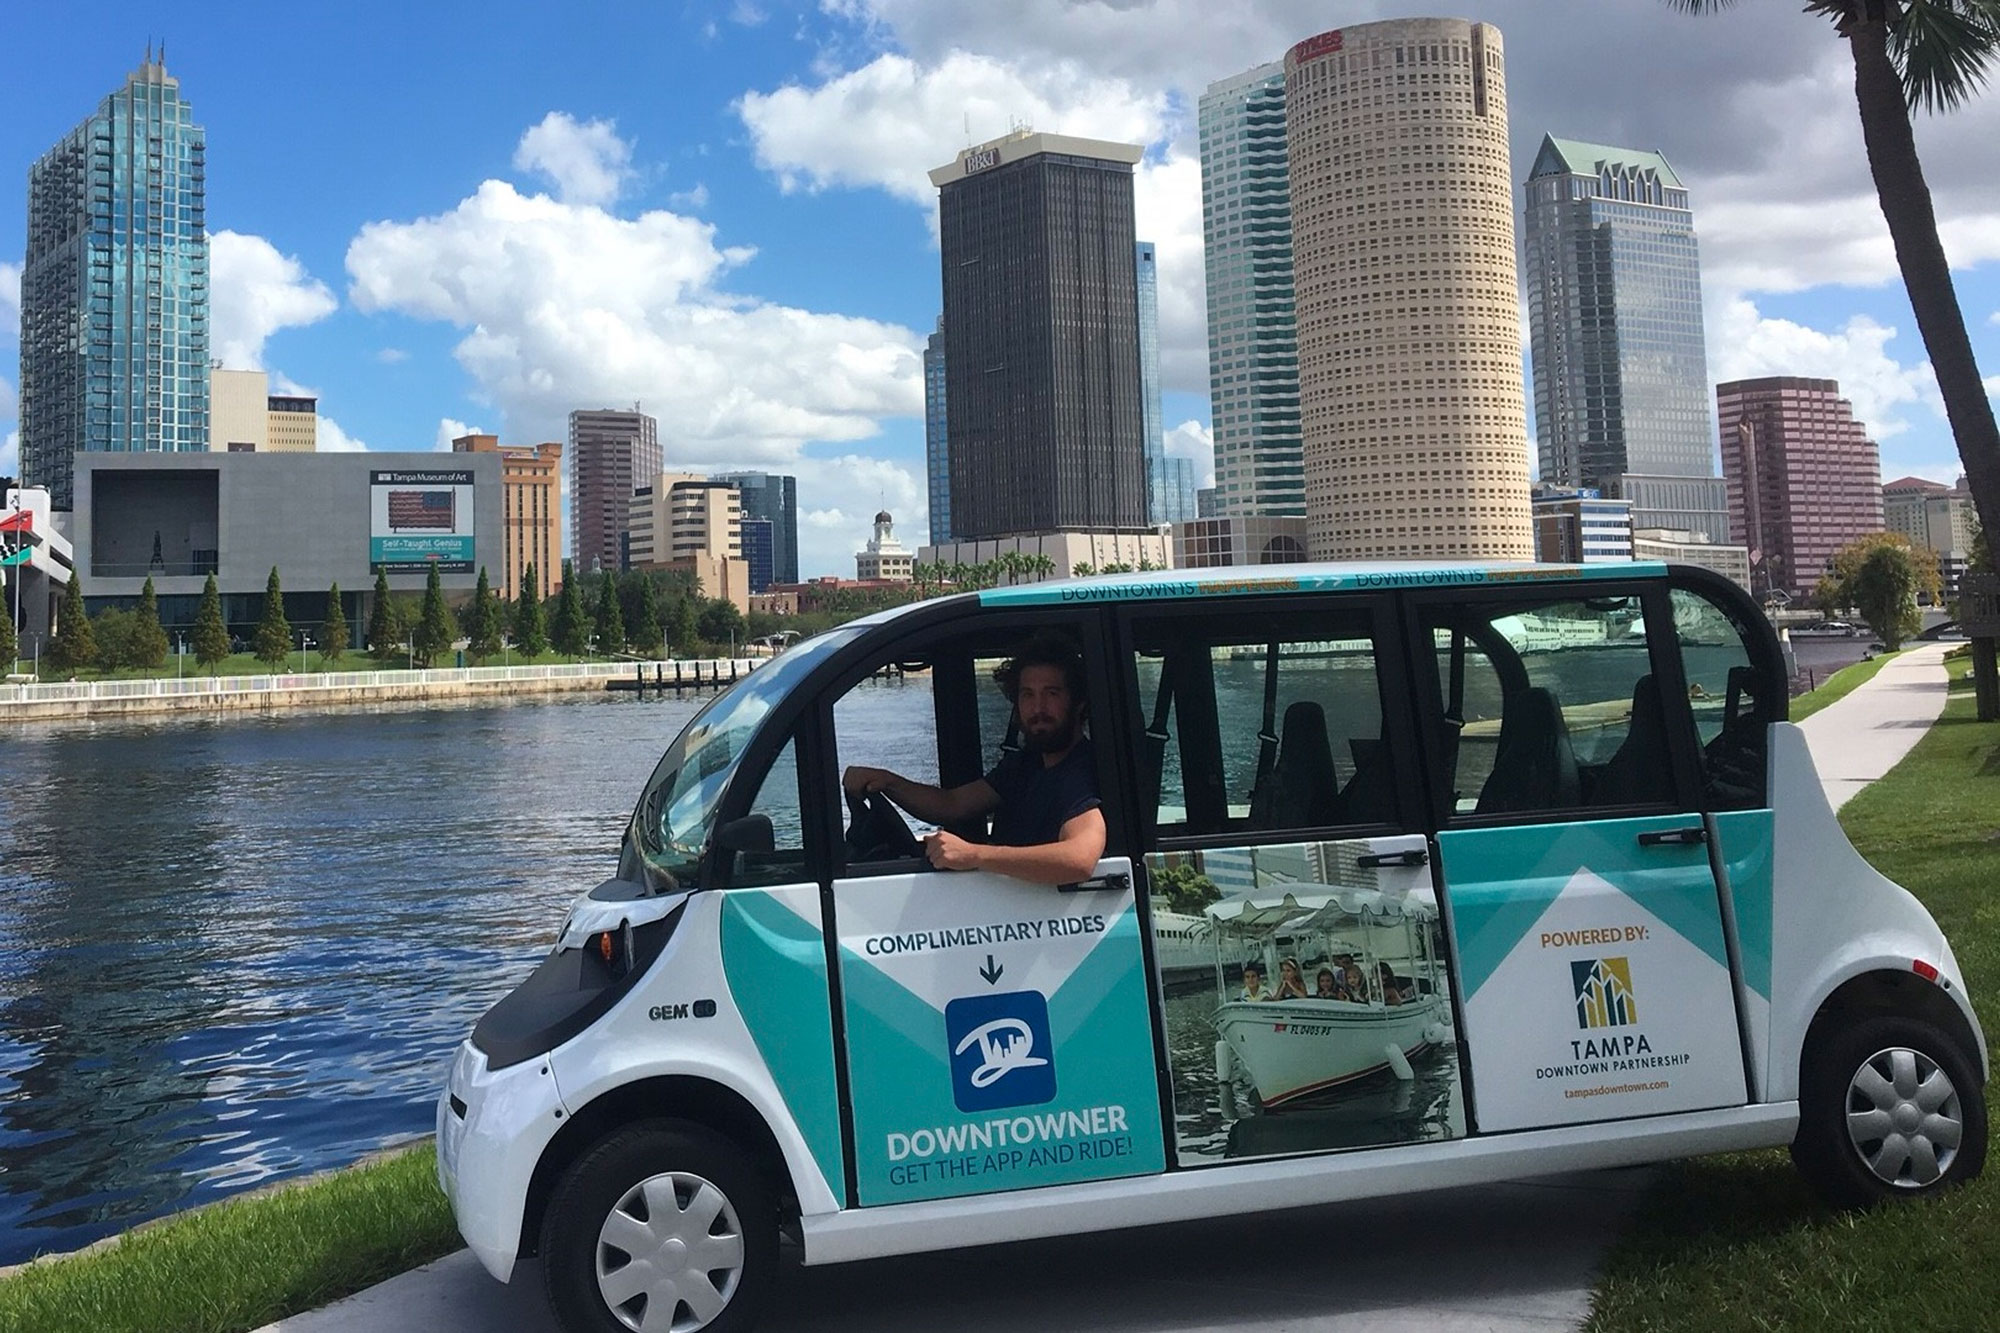 Things to Do in Tampa Florida, Attractions, Family Fun & More